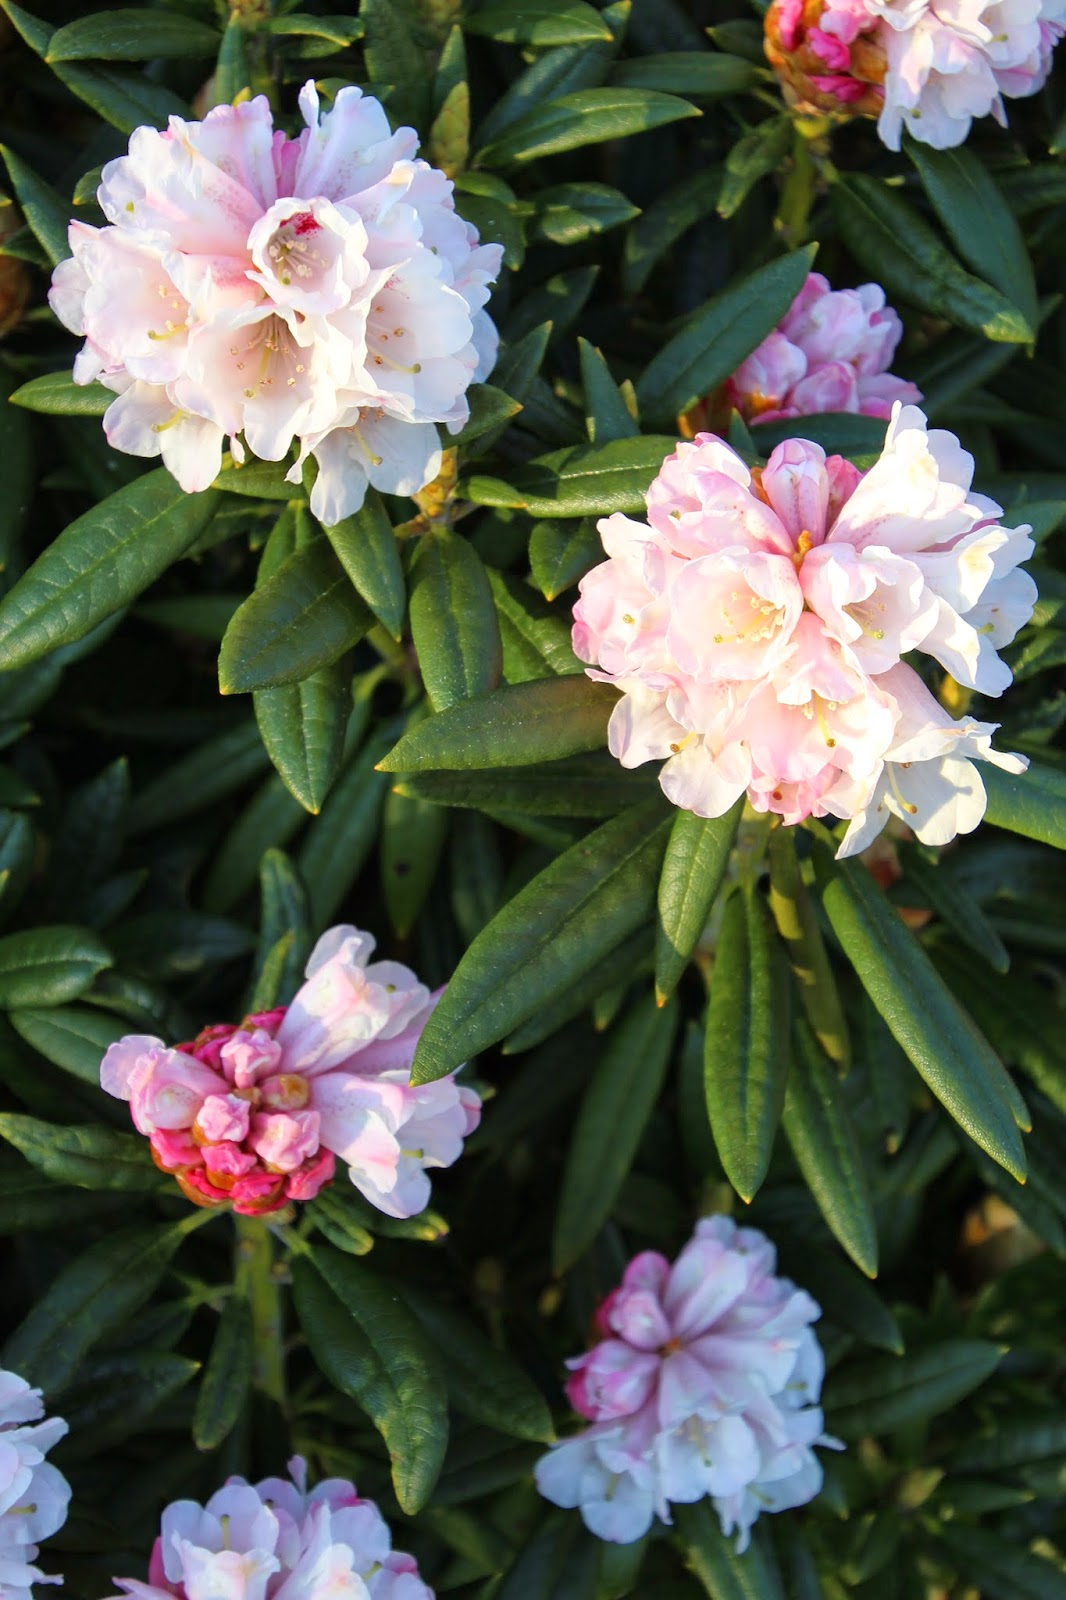 Rododendron Rhododendron roxieanum 'Blewbury'